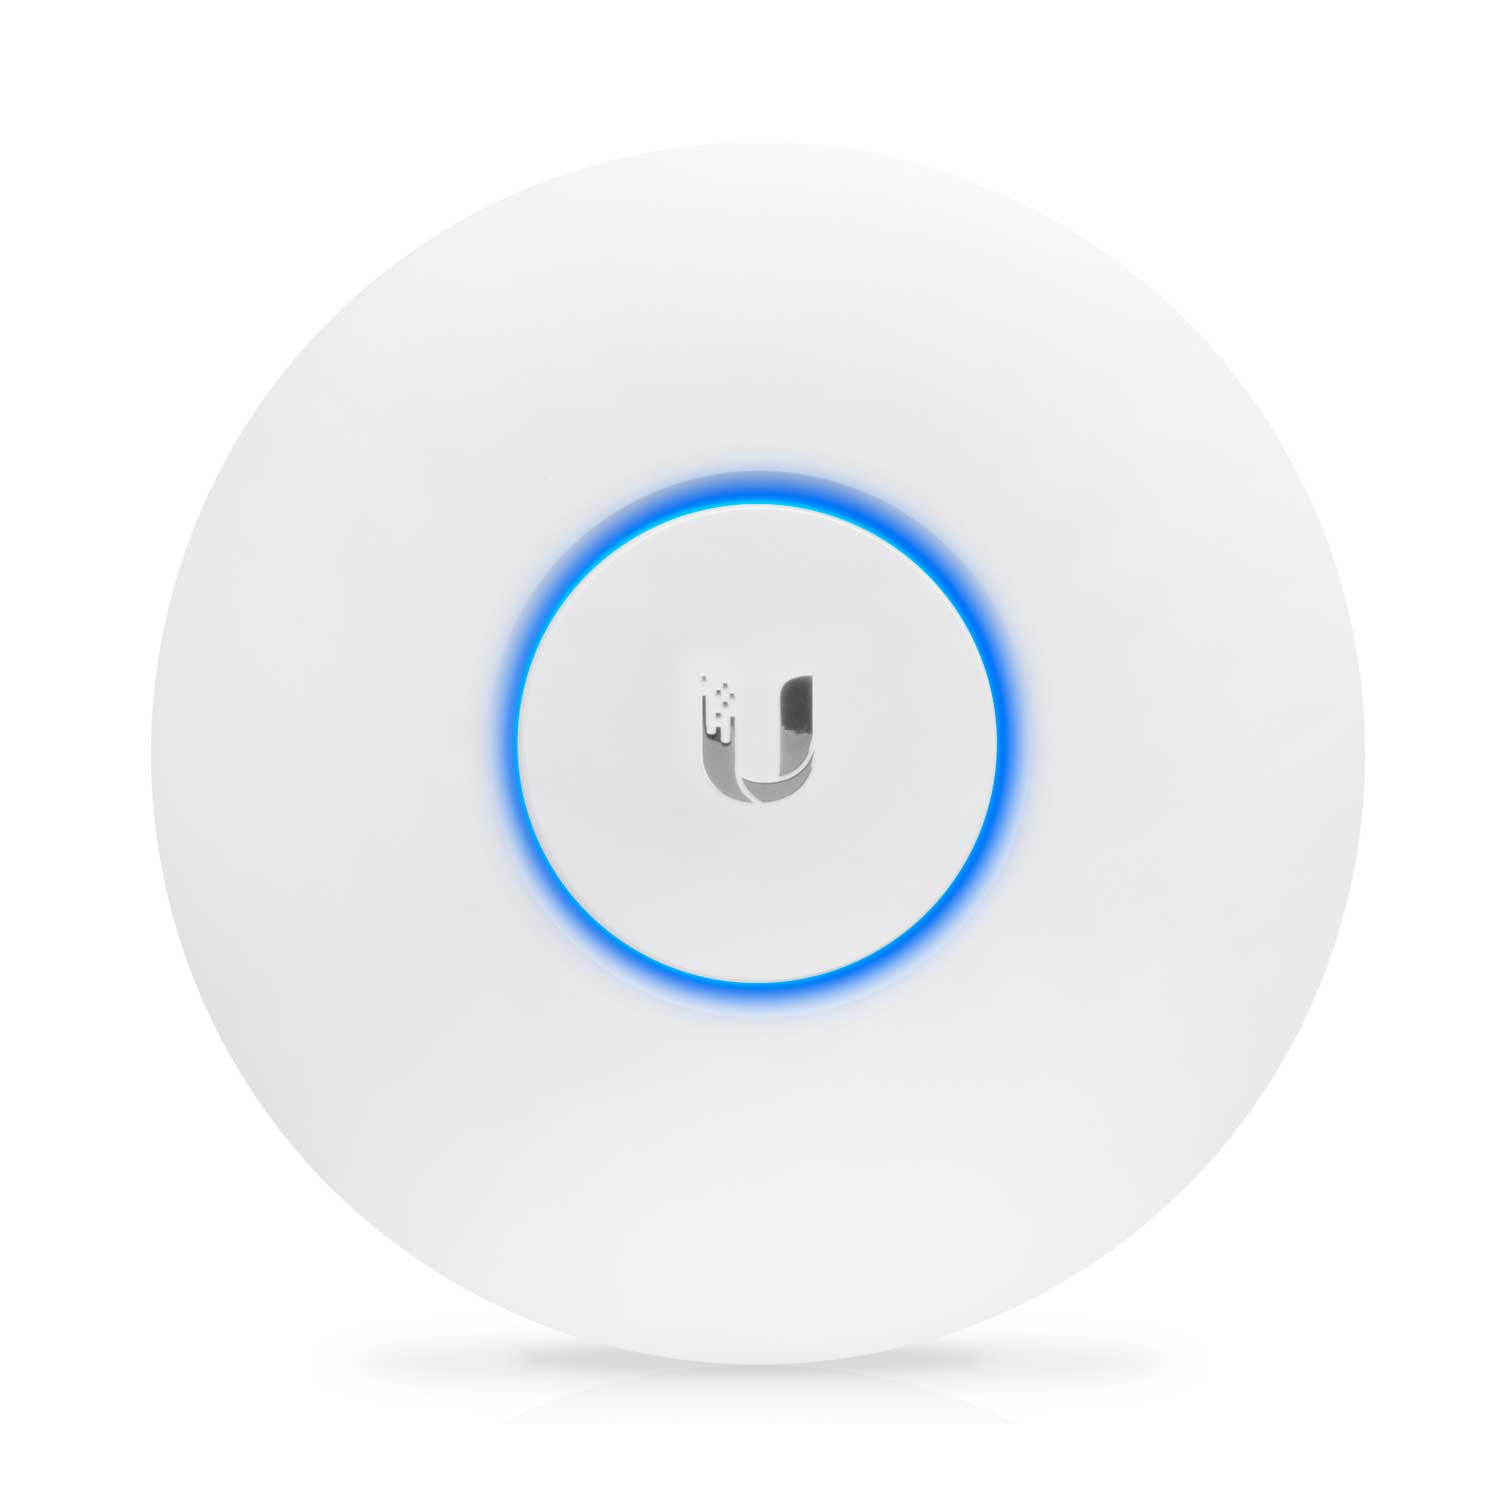 Point Dacces WiFi Ubiquiti Unifi UAP AC LR